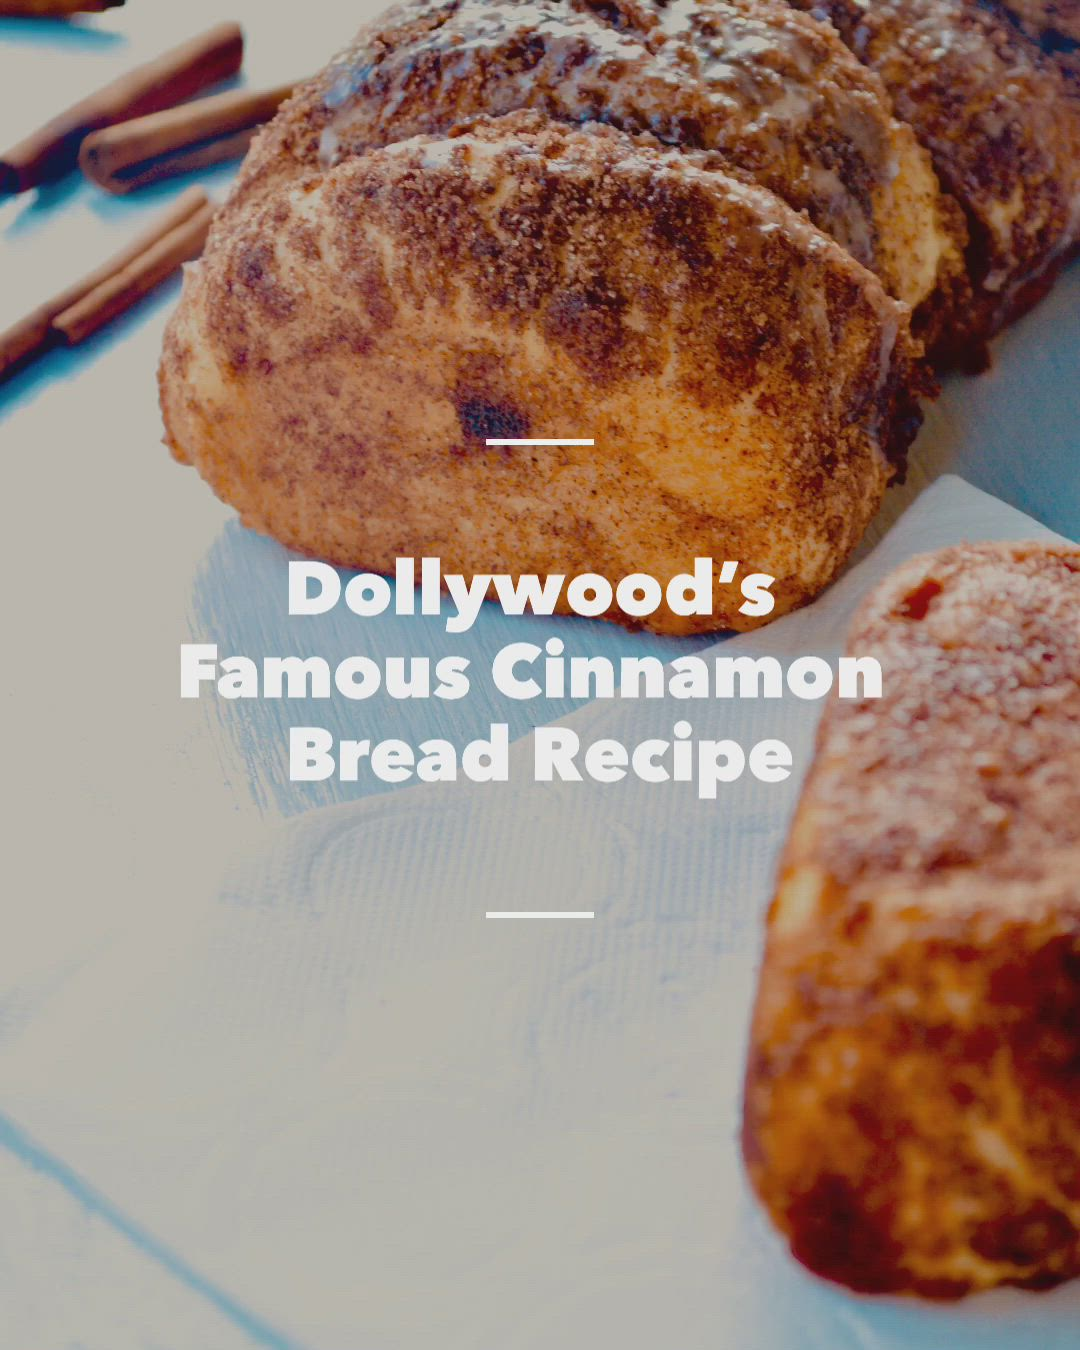 Dollywood S Famous Cinnamon Bread Recipe Cookbookies Video Recipe Video Cinnamon Bread Cinnamon Bread Recipe Recipes